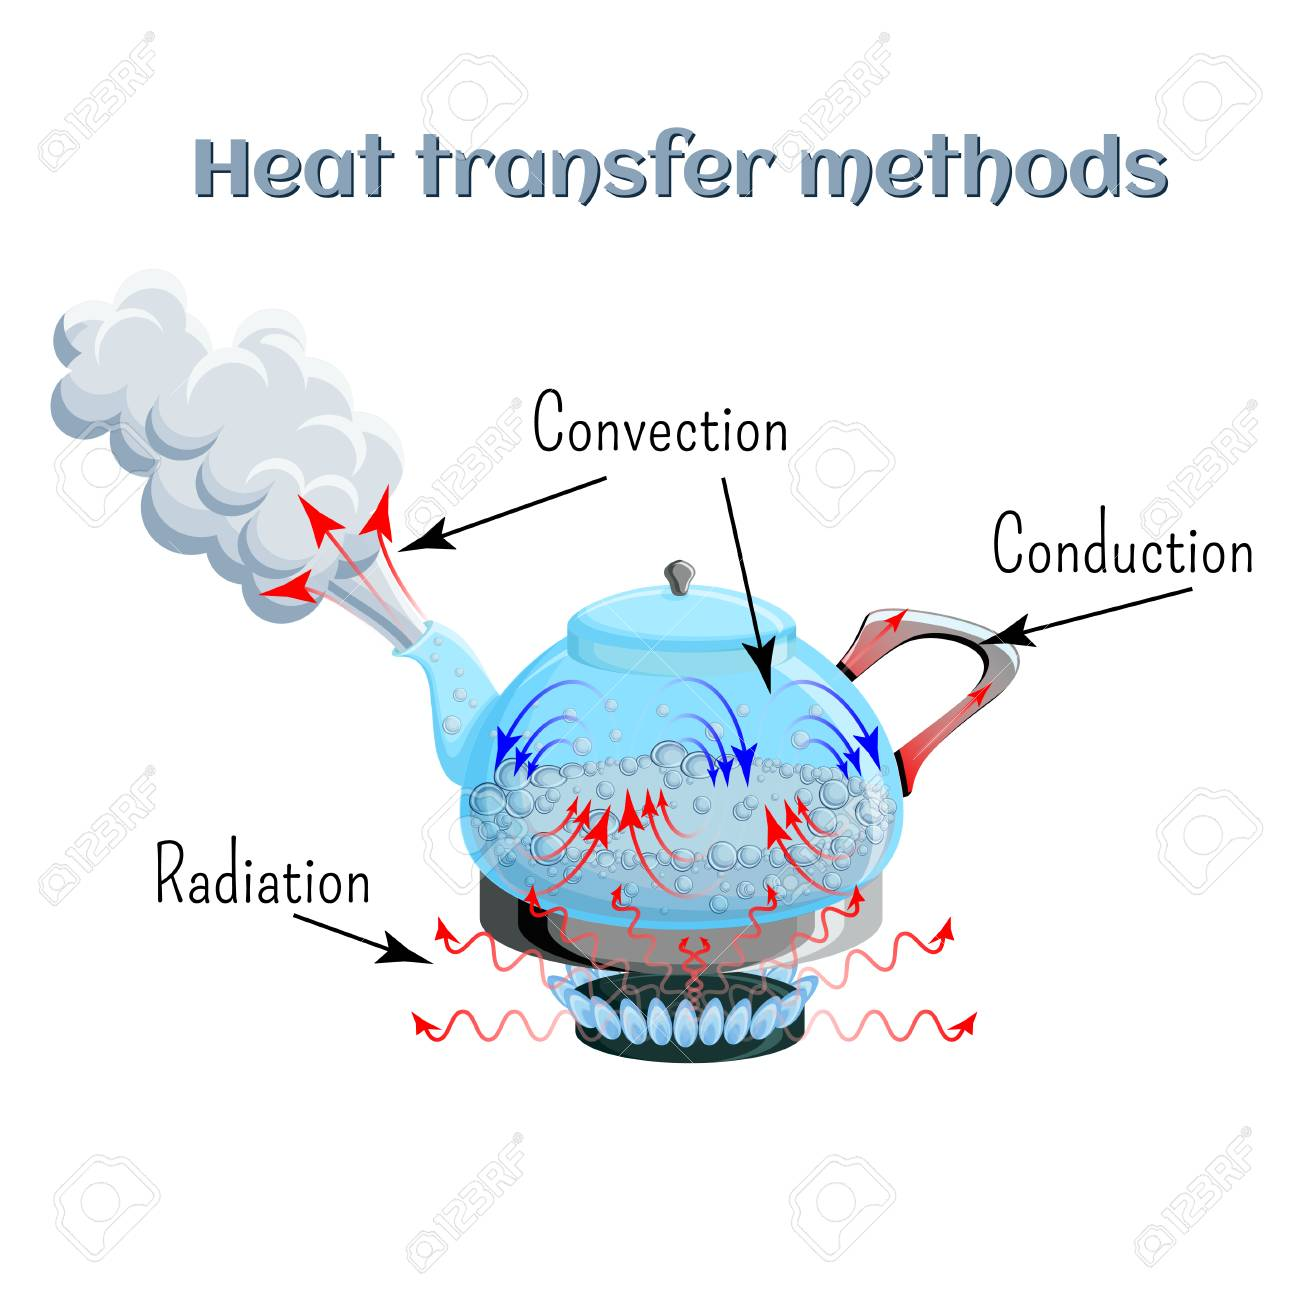 Heat transfer methods on example of water boiling in a kettler on gas stove top. Convection, conduction, radiation. - 104090873